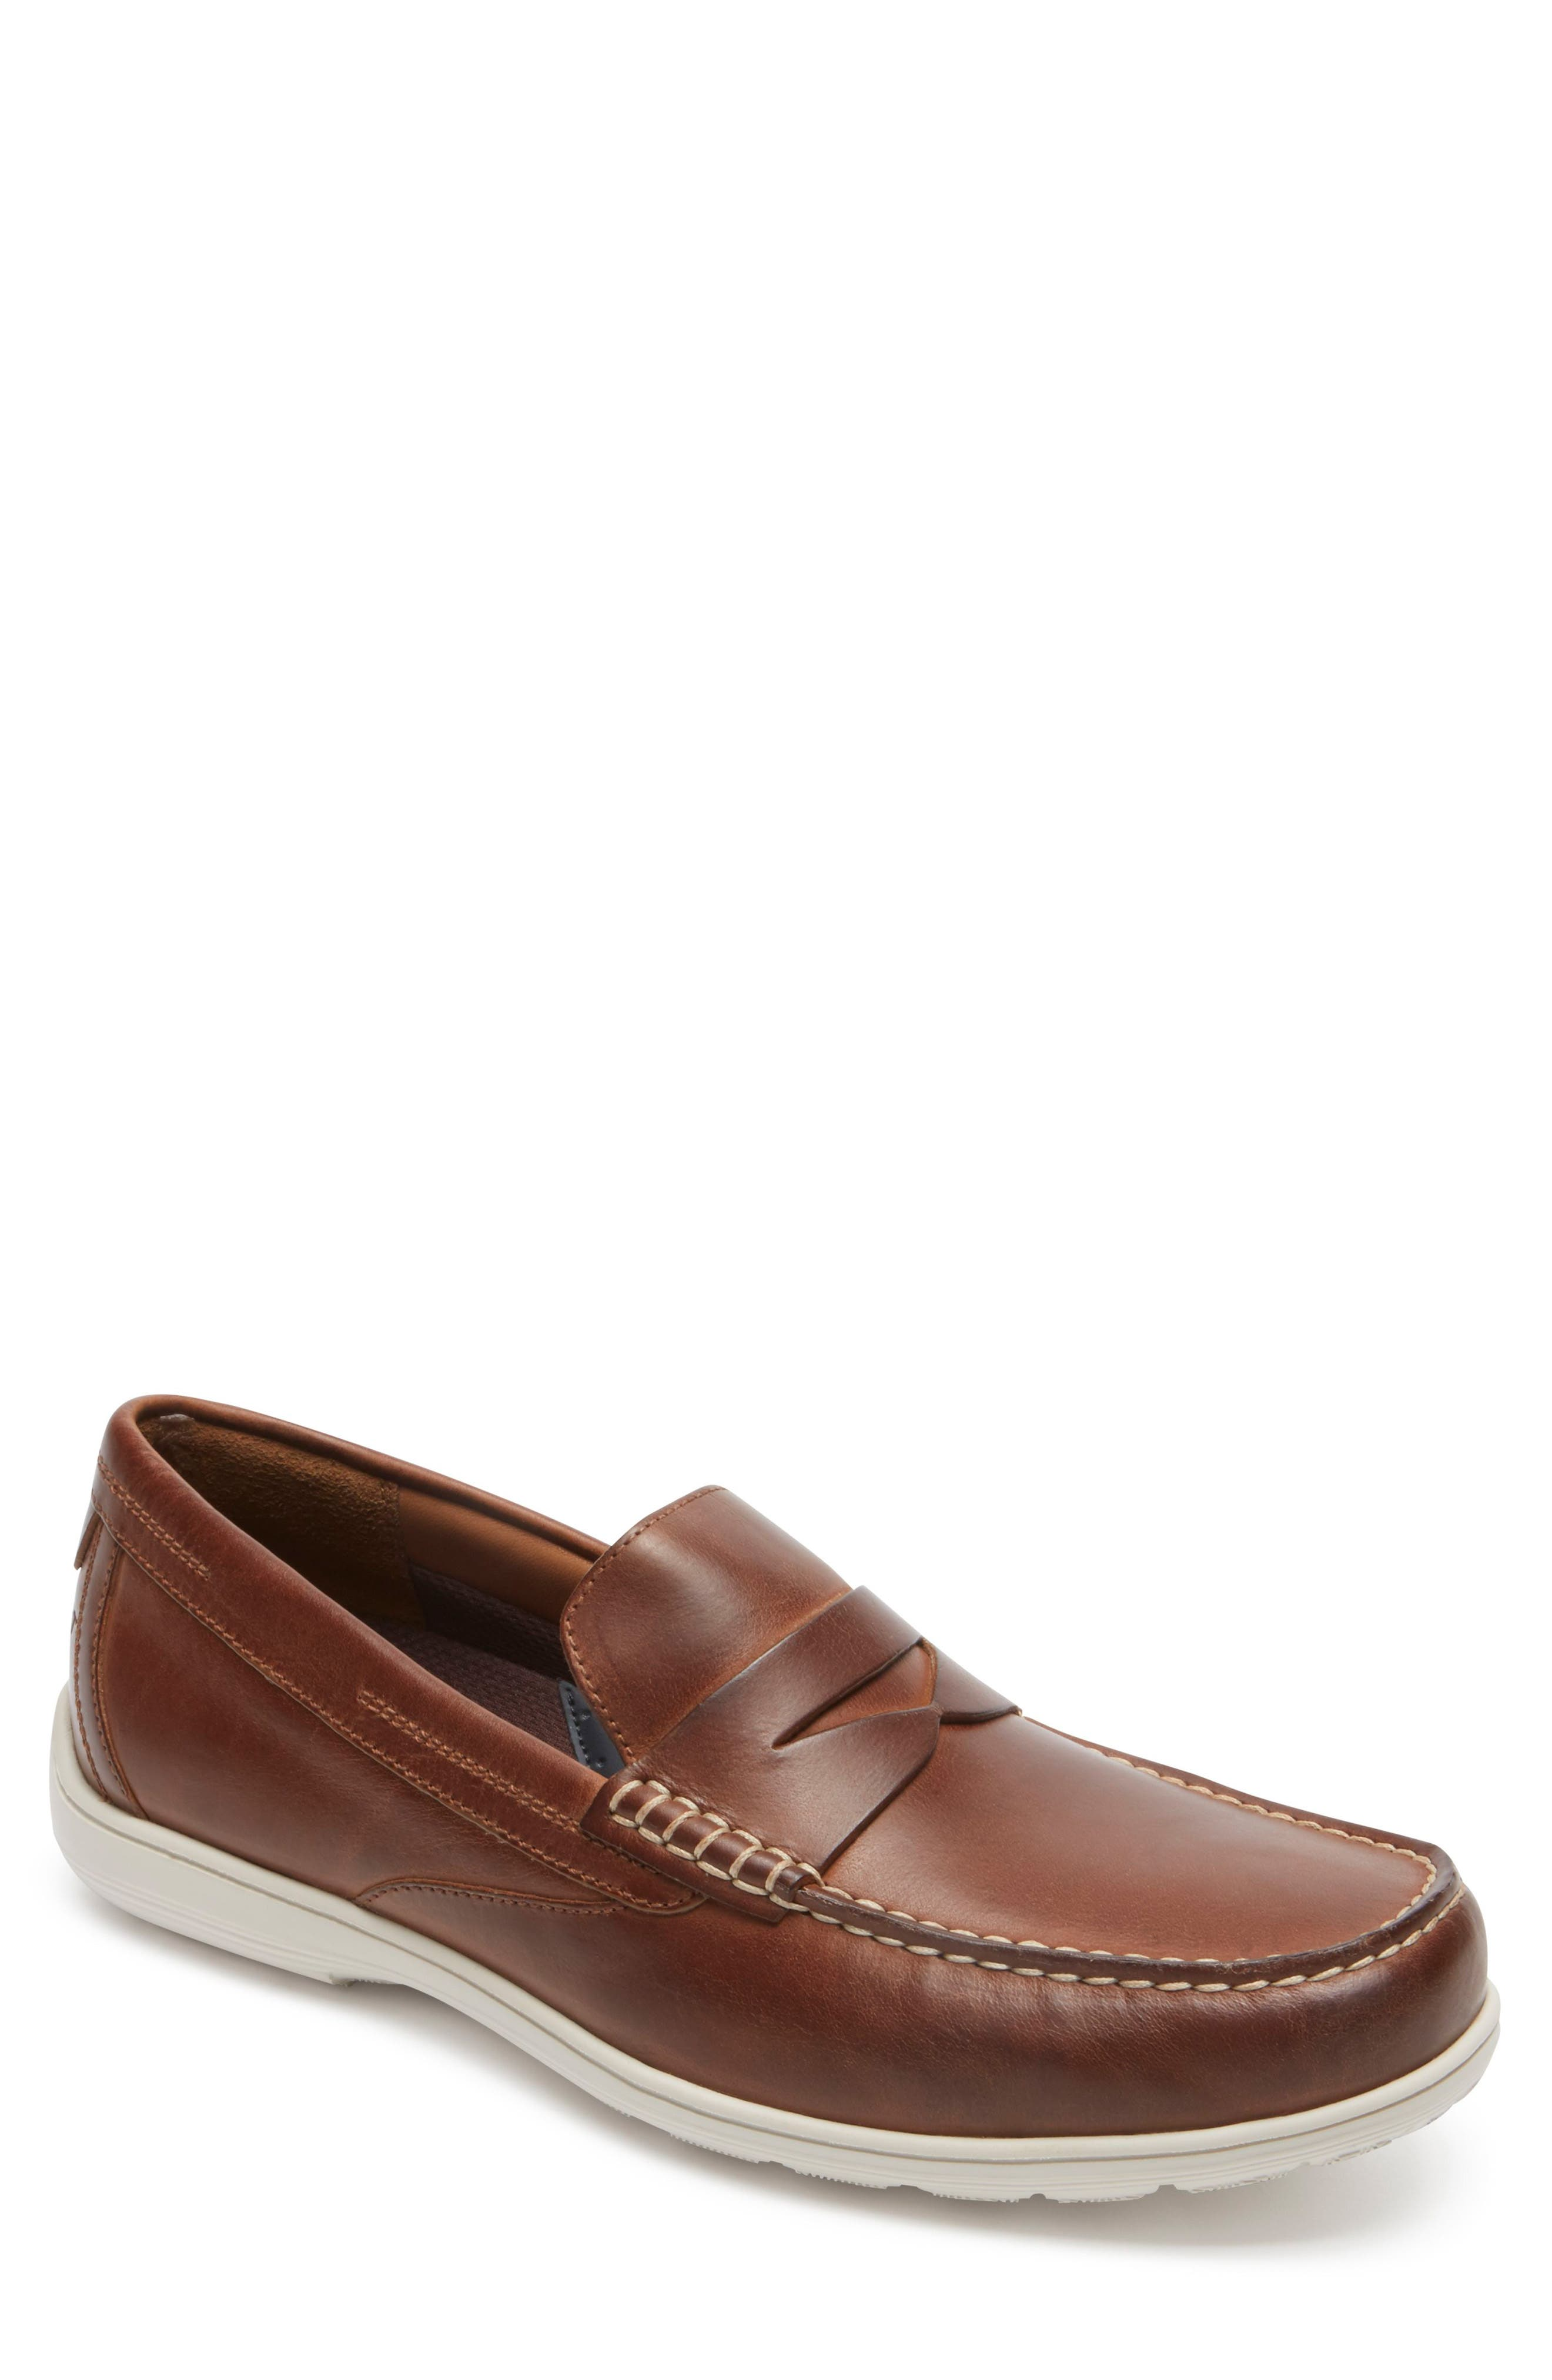 Total Motion Penny Loafer,                         Main,                         color,